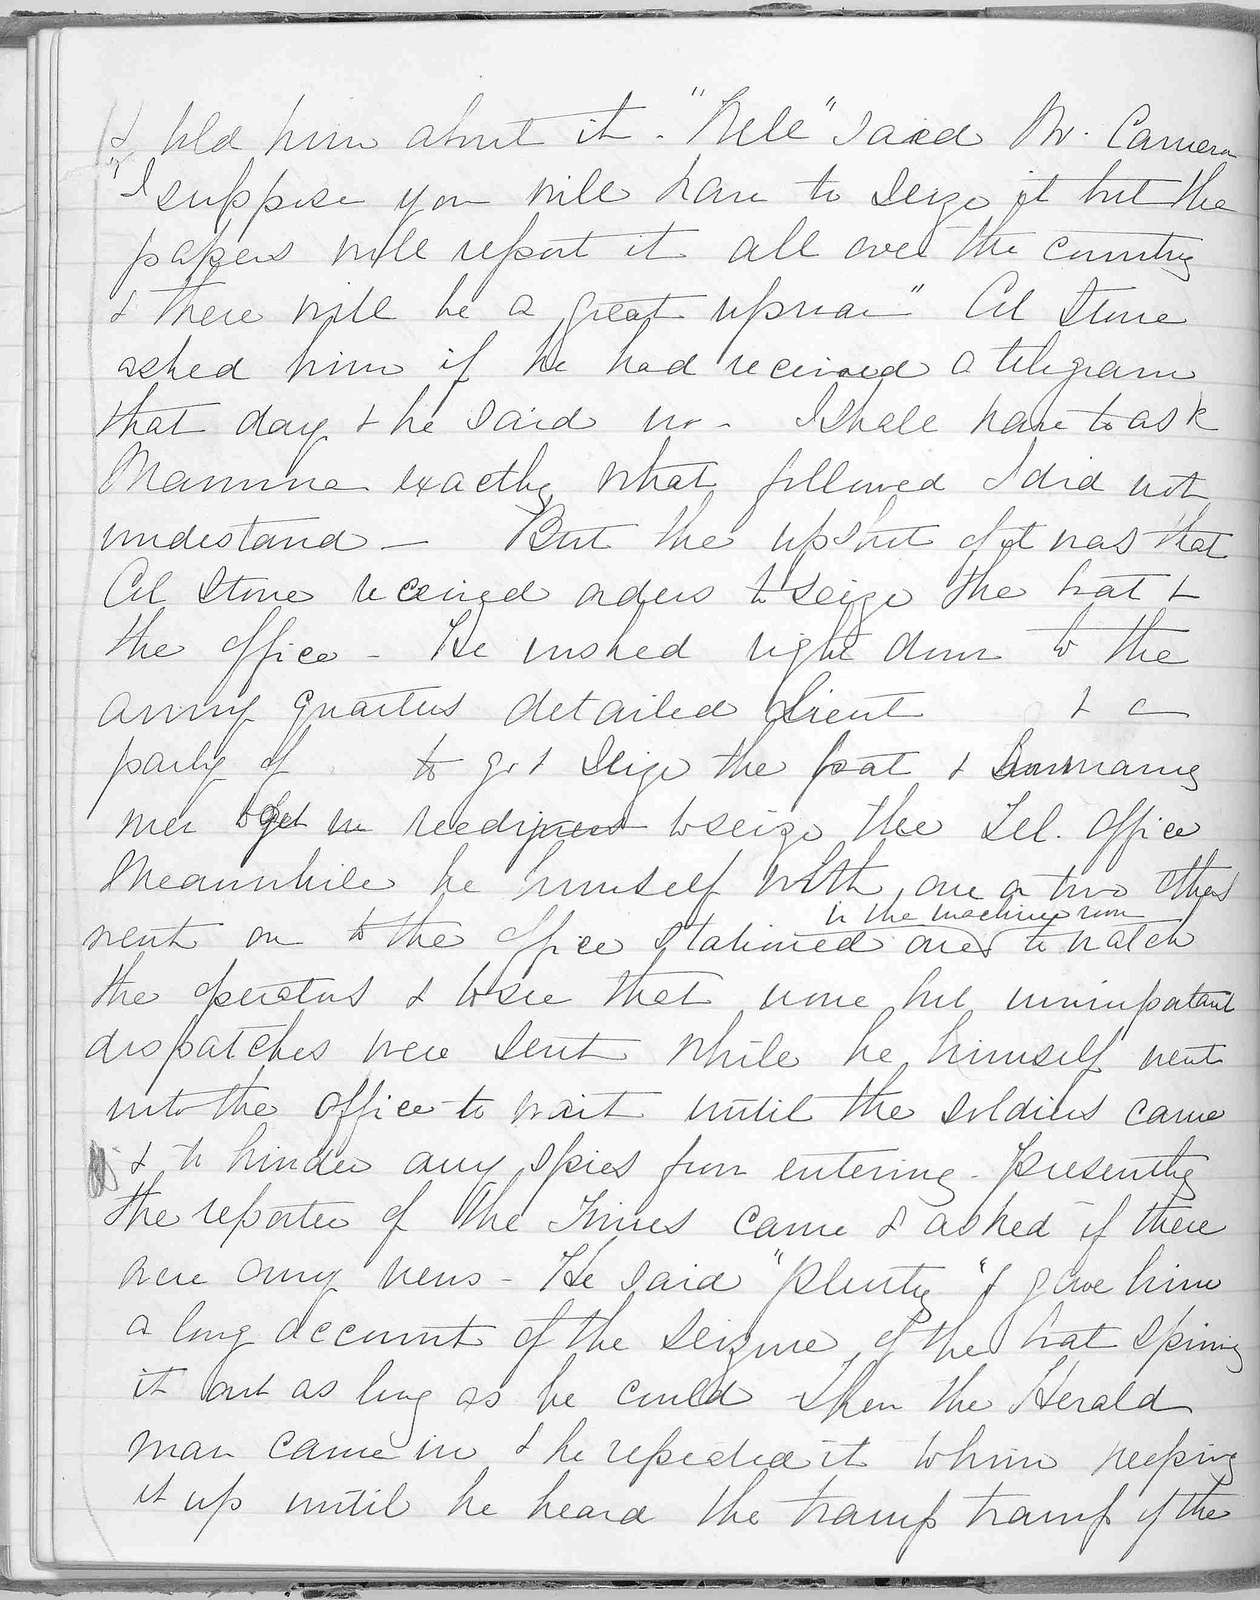 Journal by Mabel Hubbard Bell, from October 25, 1884 to November 21, 1886